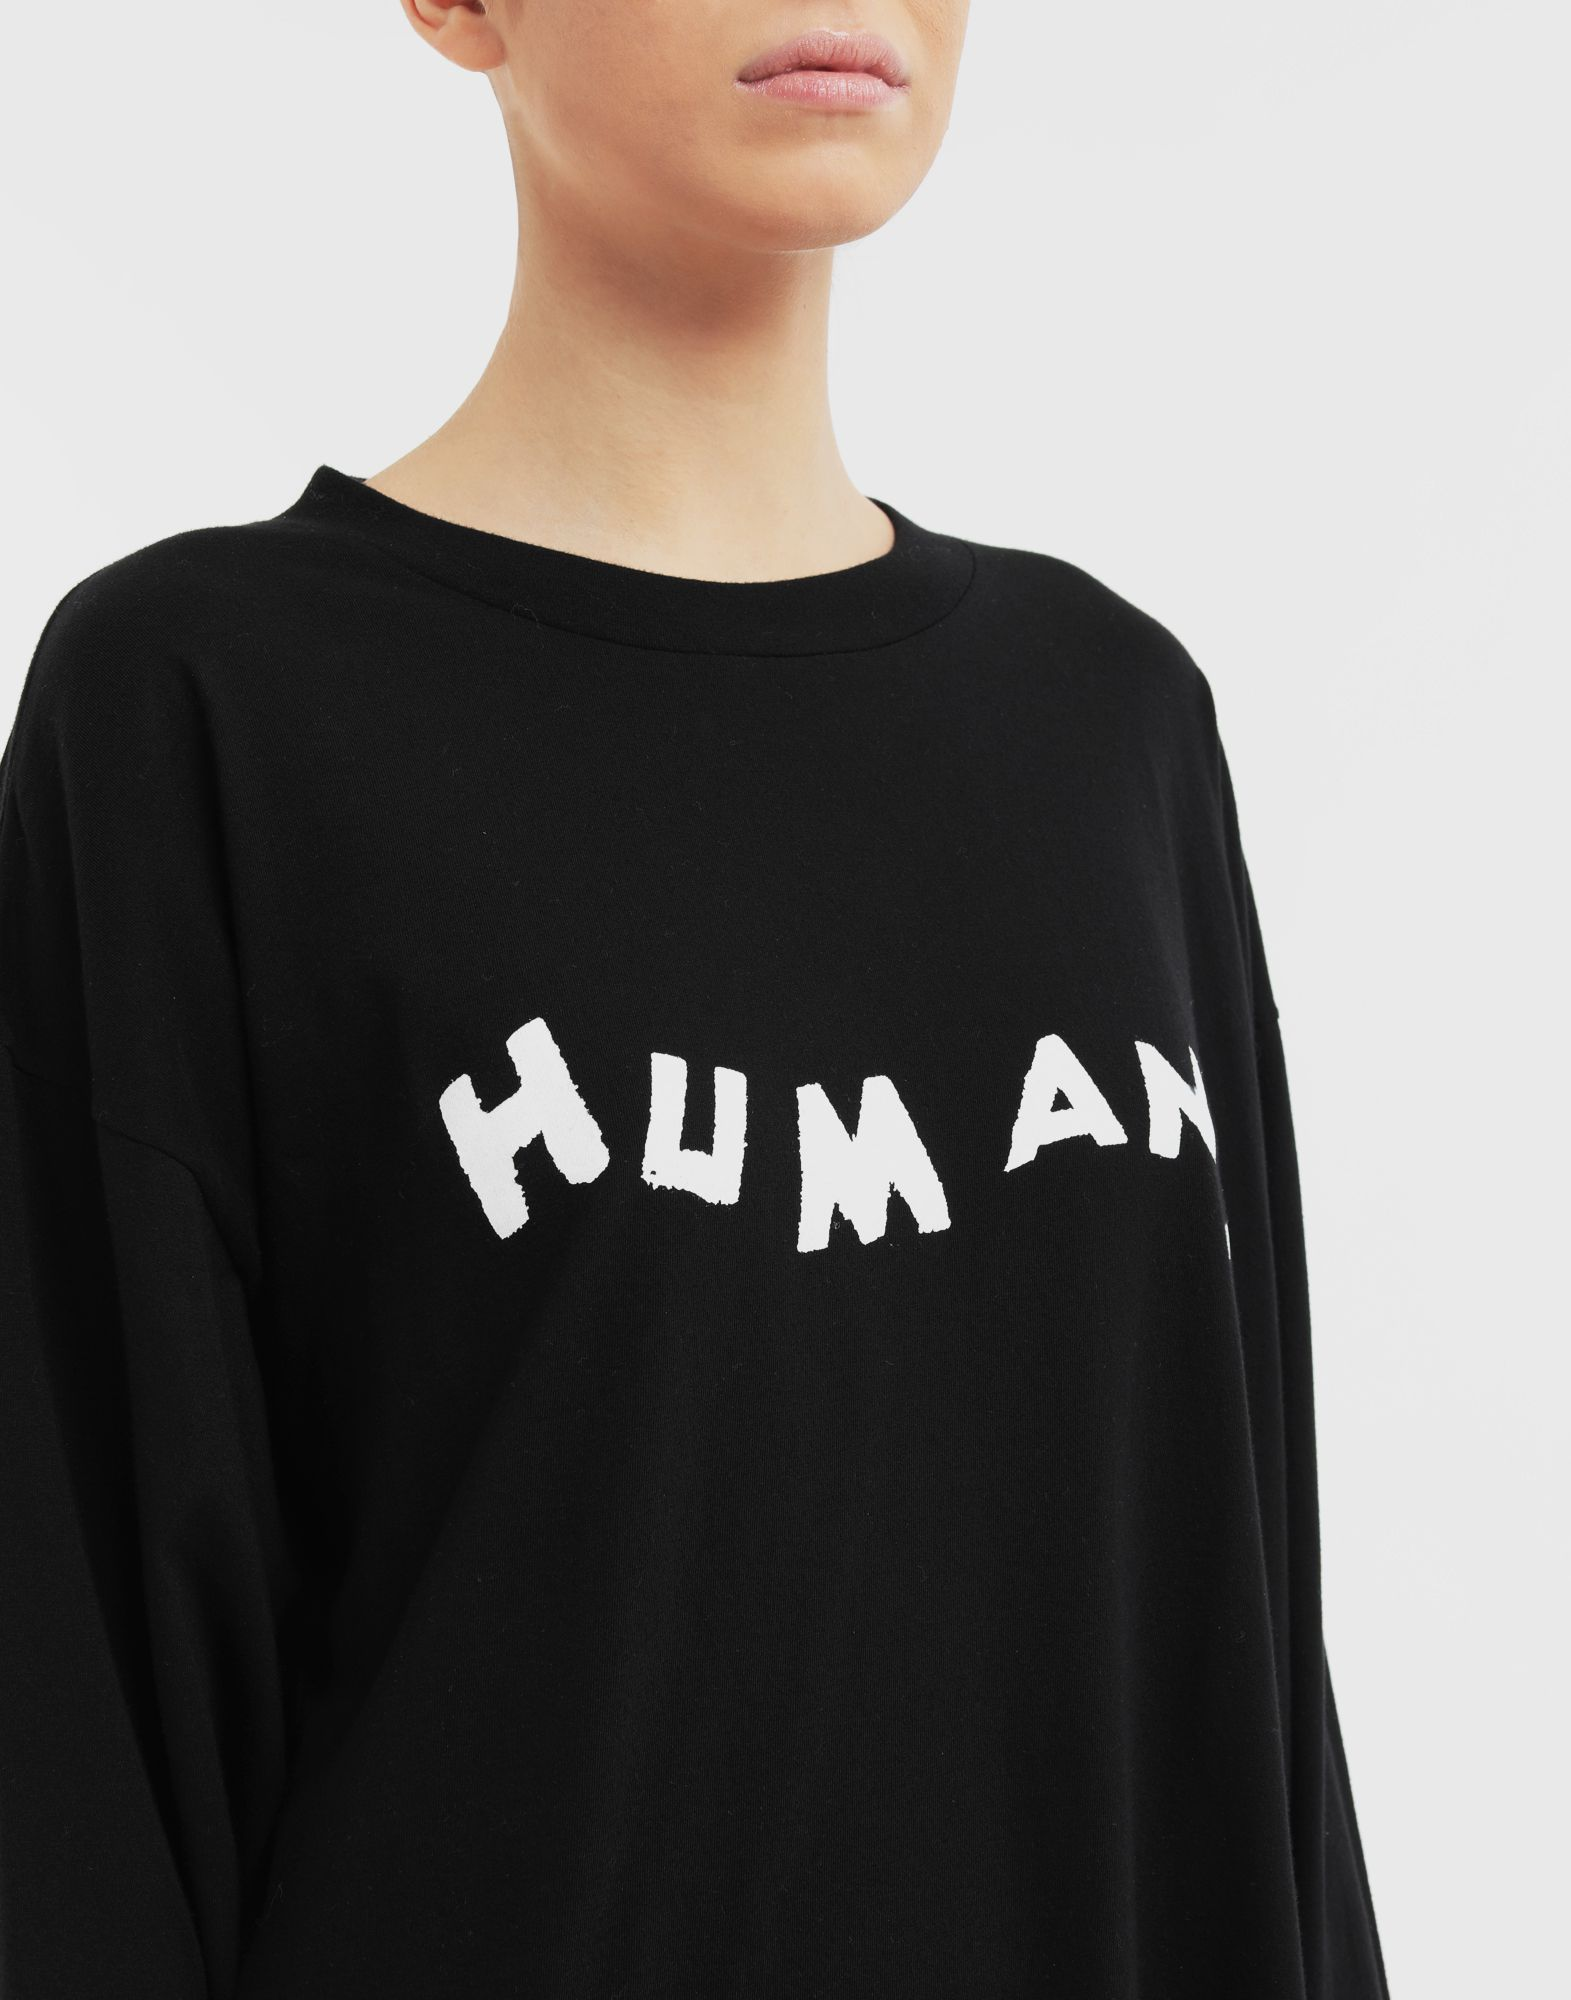 MM6 MAISON MARGIELA Sudadera 'Humans' Camiseta de manga larga Mujer a